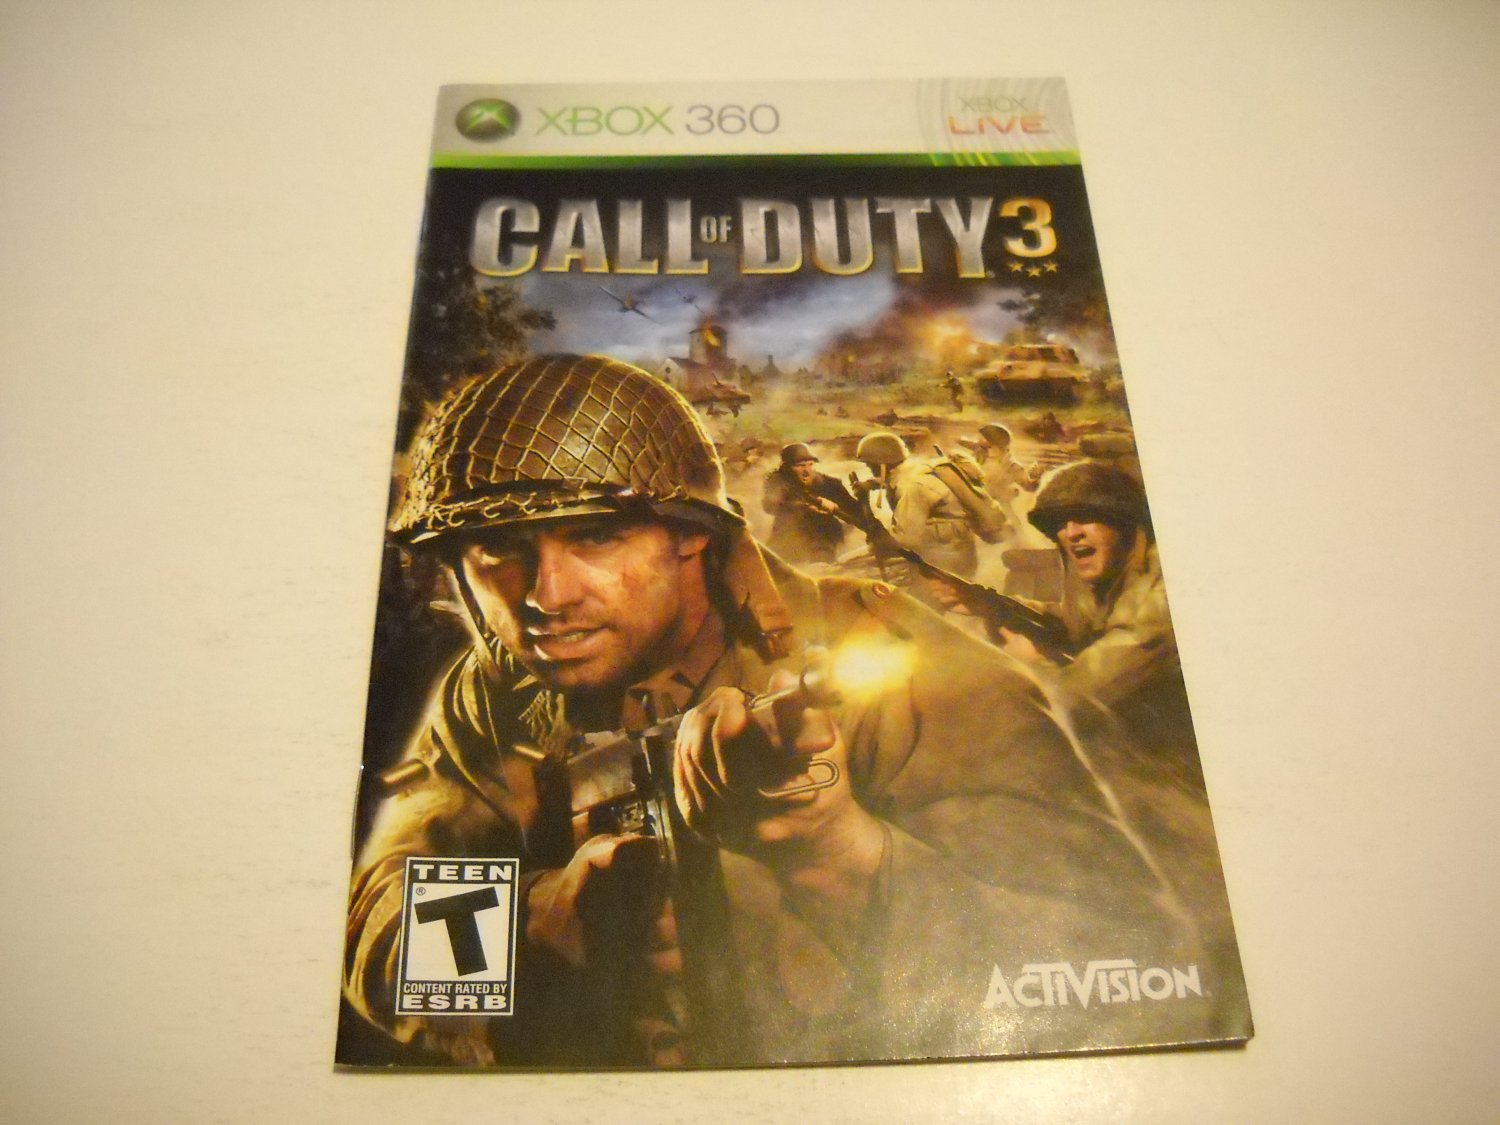 Manual ONLY ~  for Call of Duty 3   - Xbox 360 Instruction Booklet